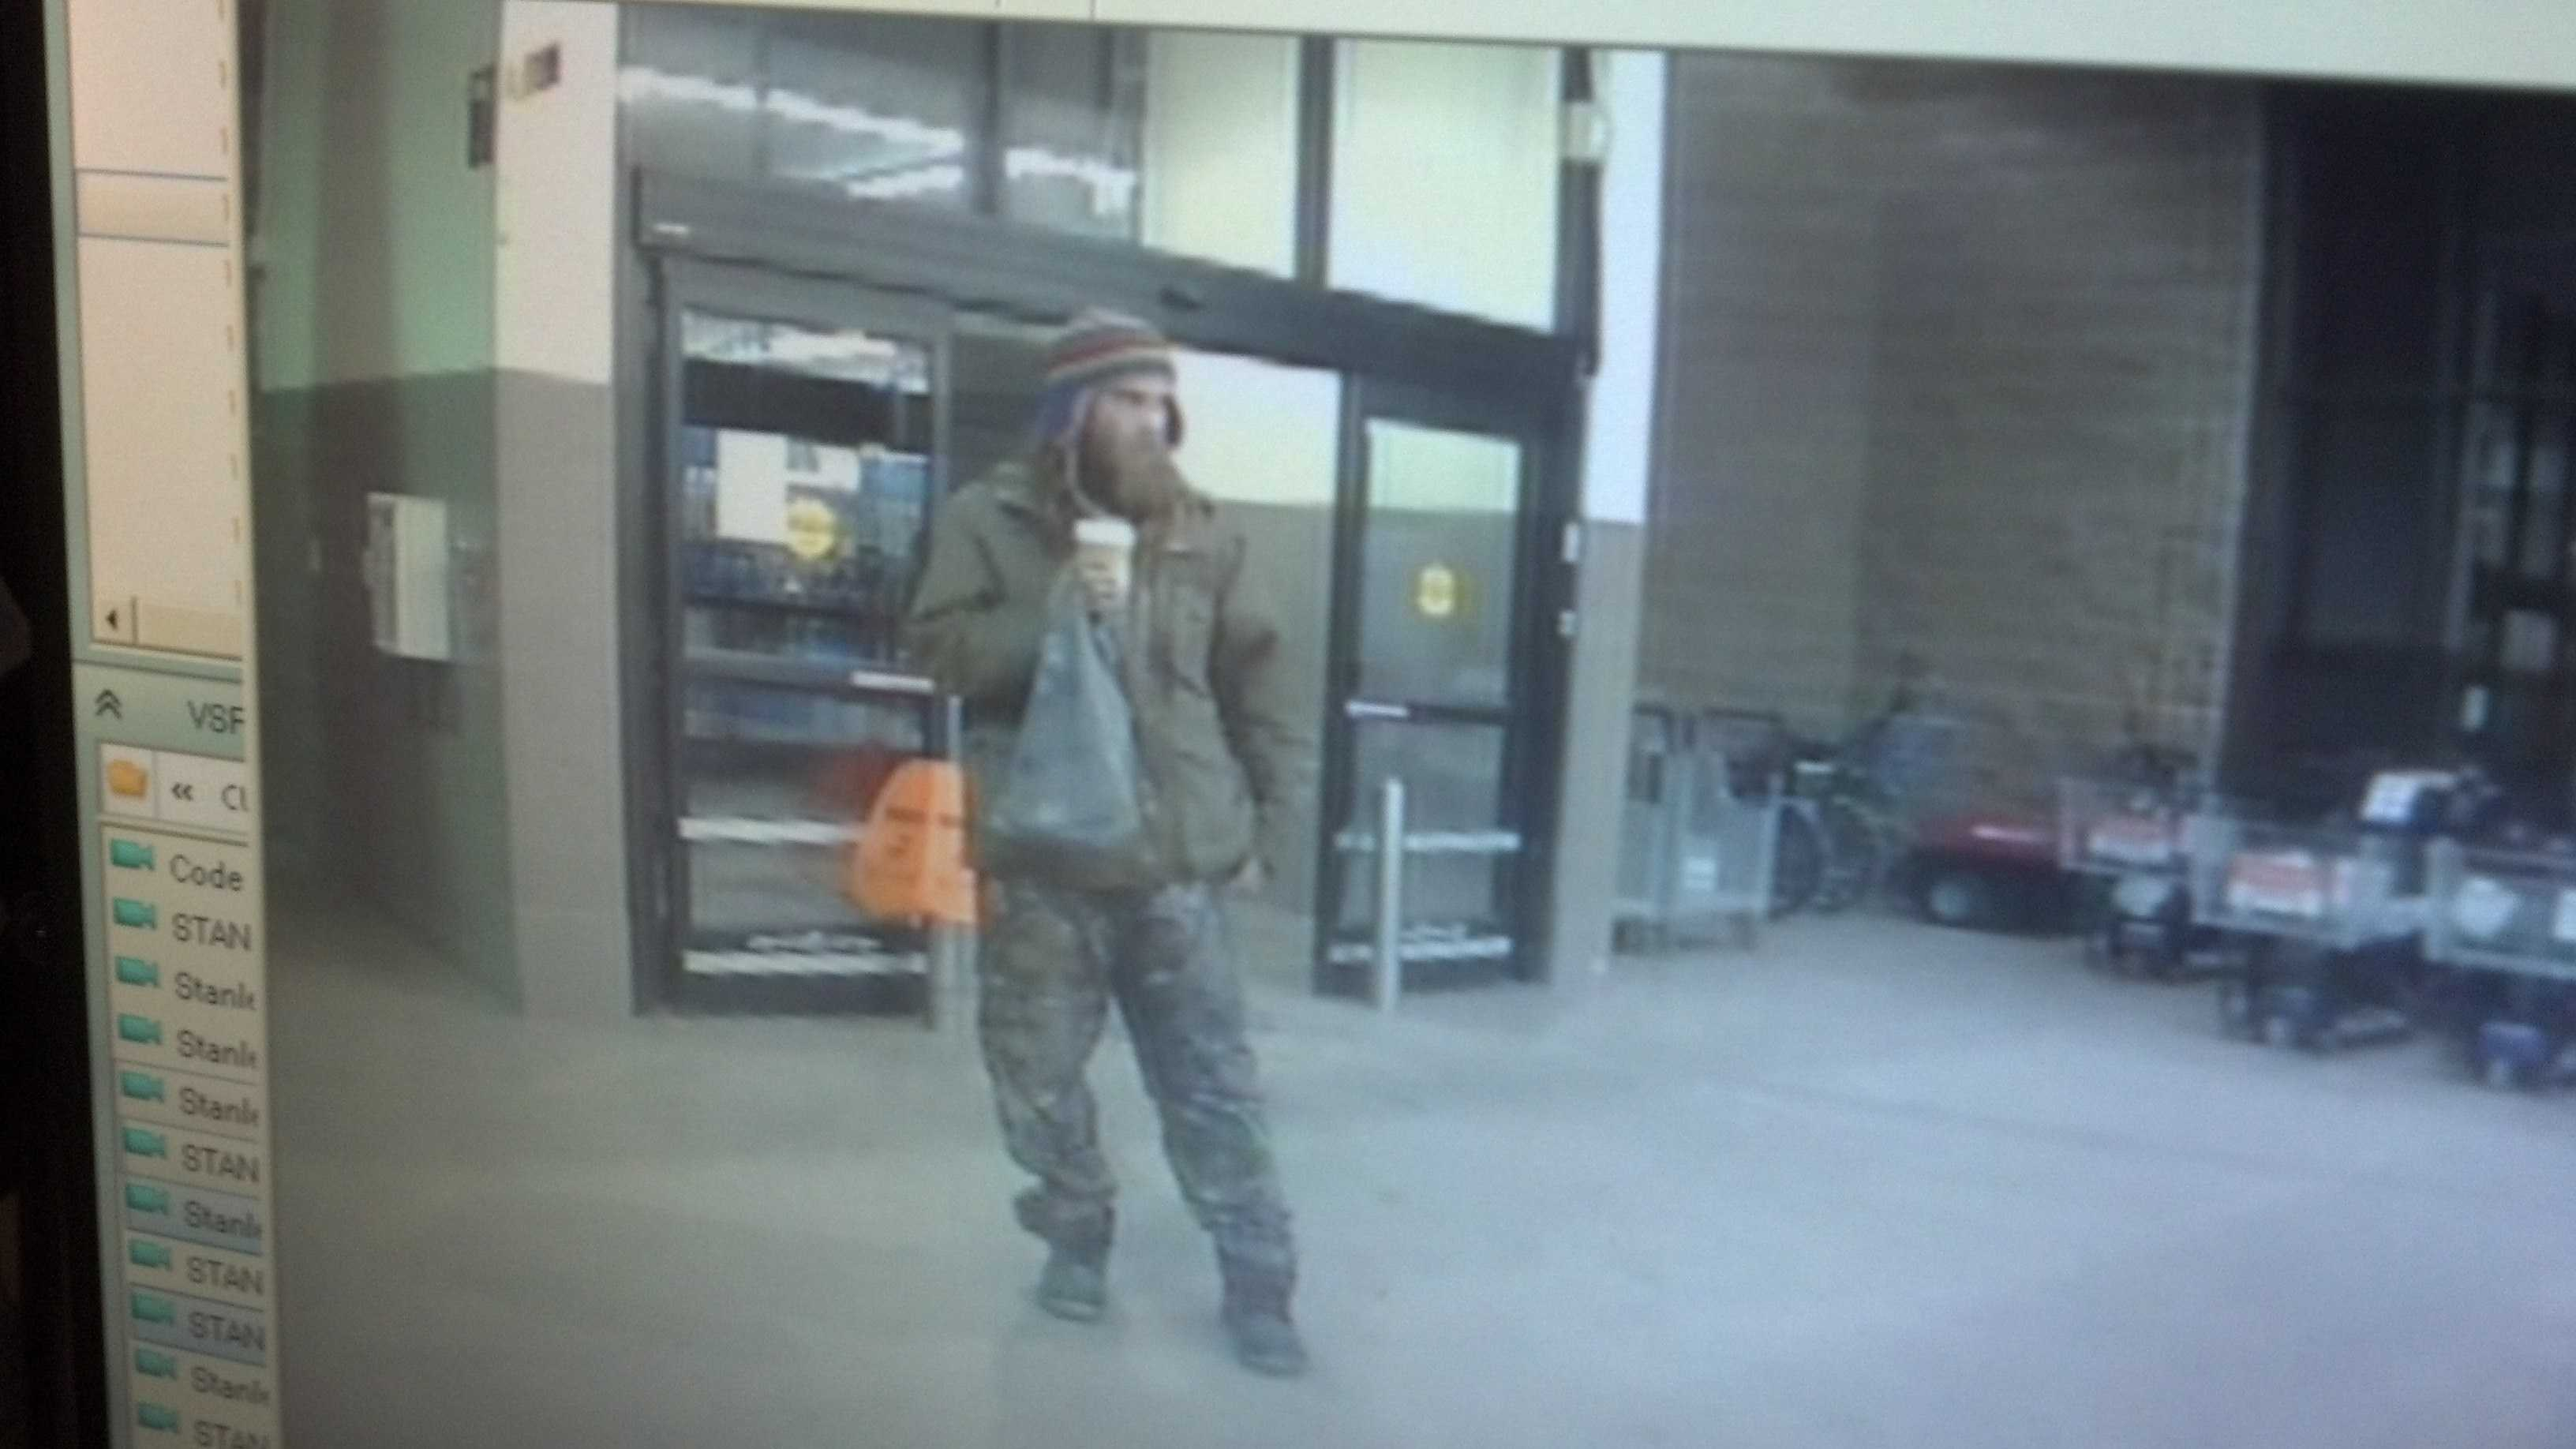 Police in Berlin, Vermont are looking for this man. He is suspected of stealing electronics from Walmart.